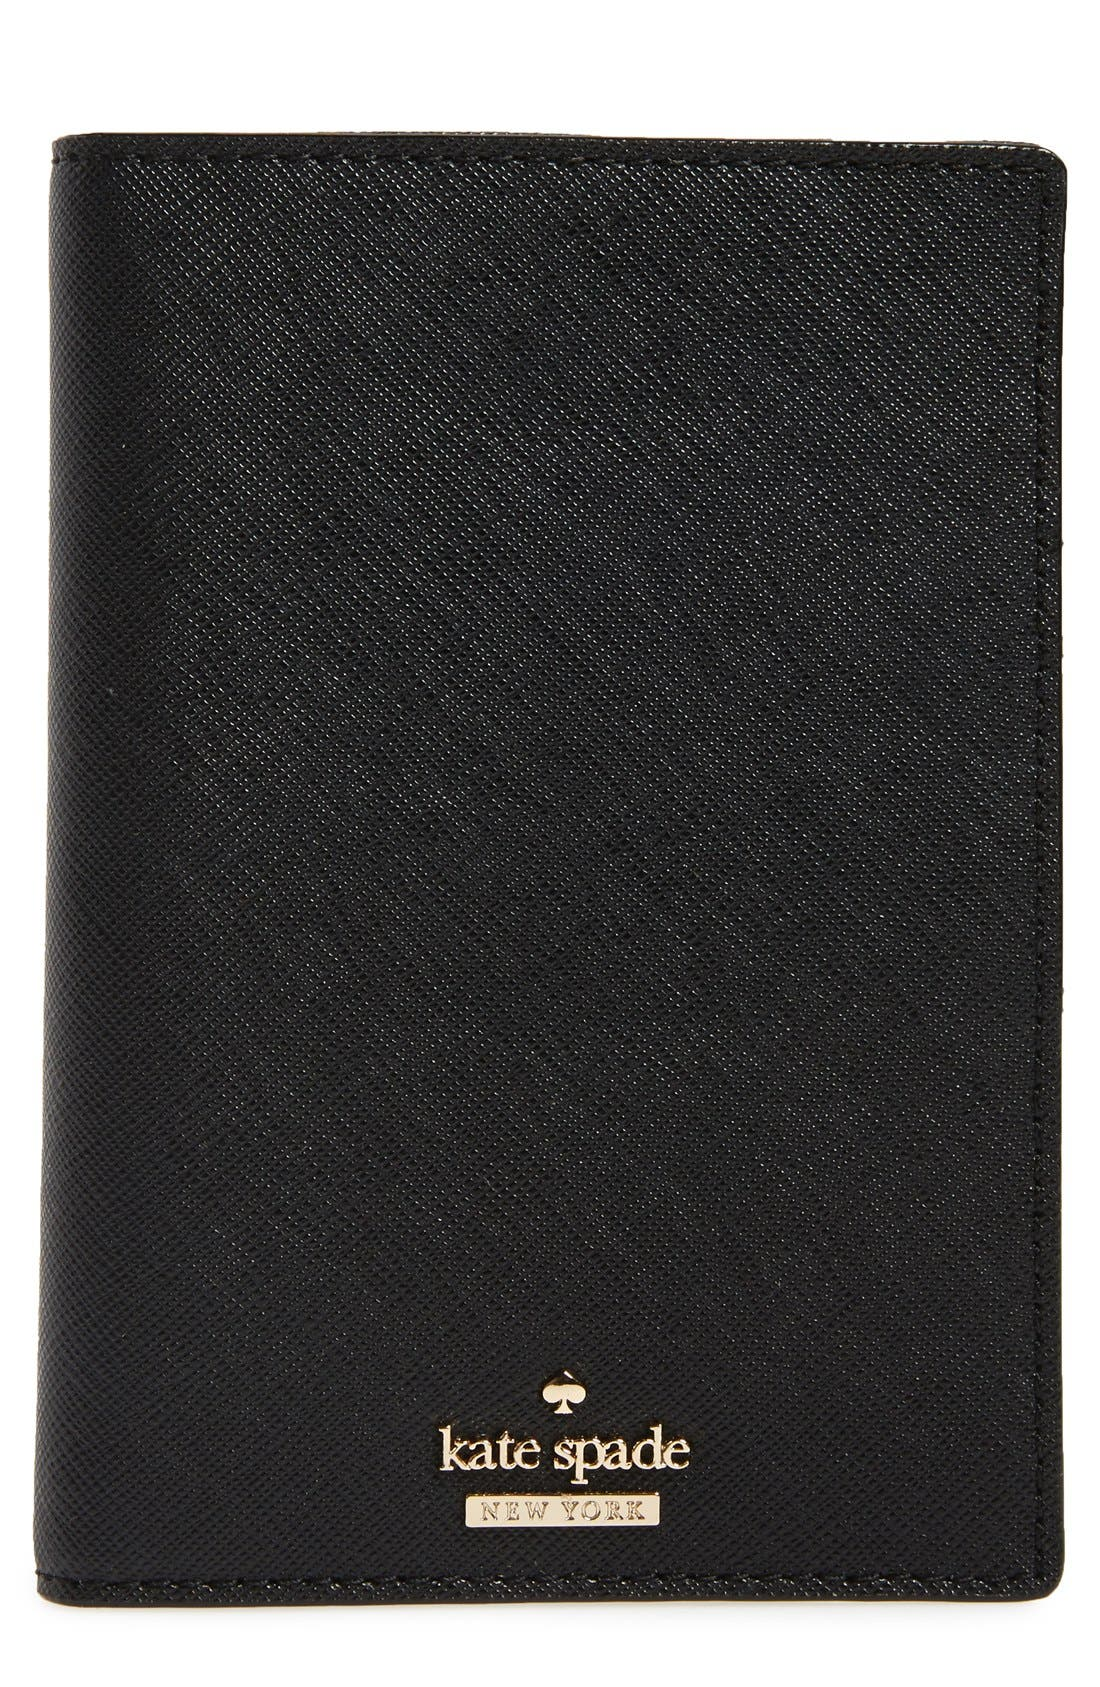 'cameron street' leather passport holder,                         Main,                         color, BLACK